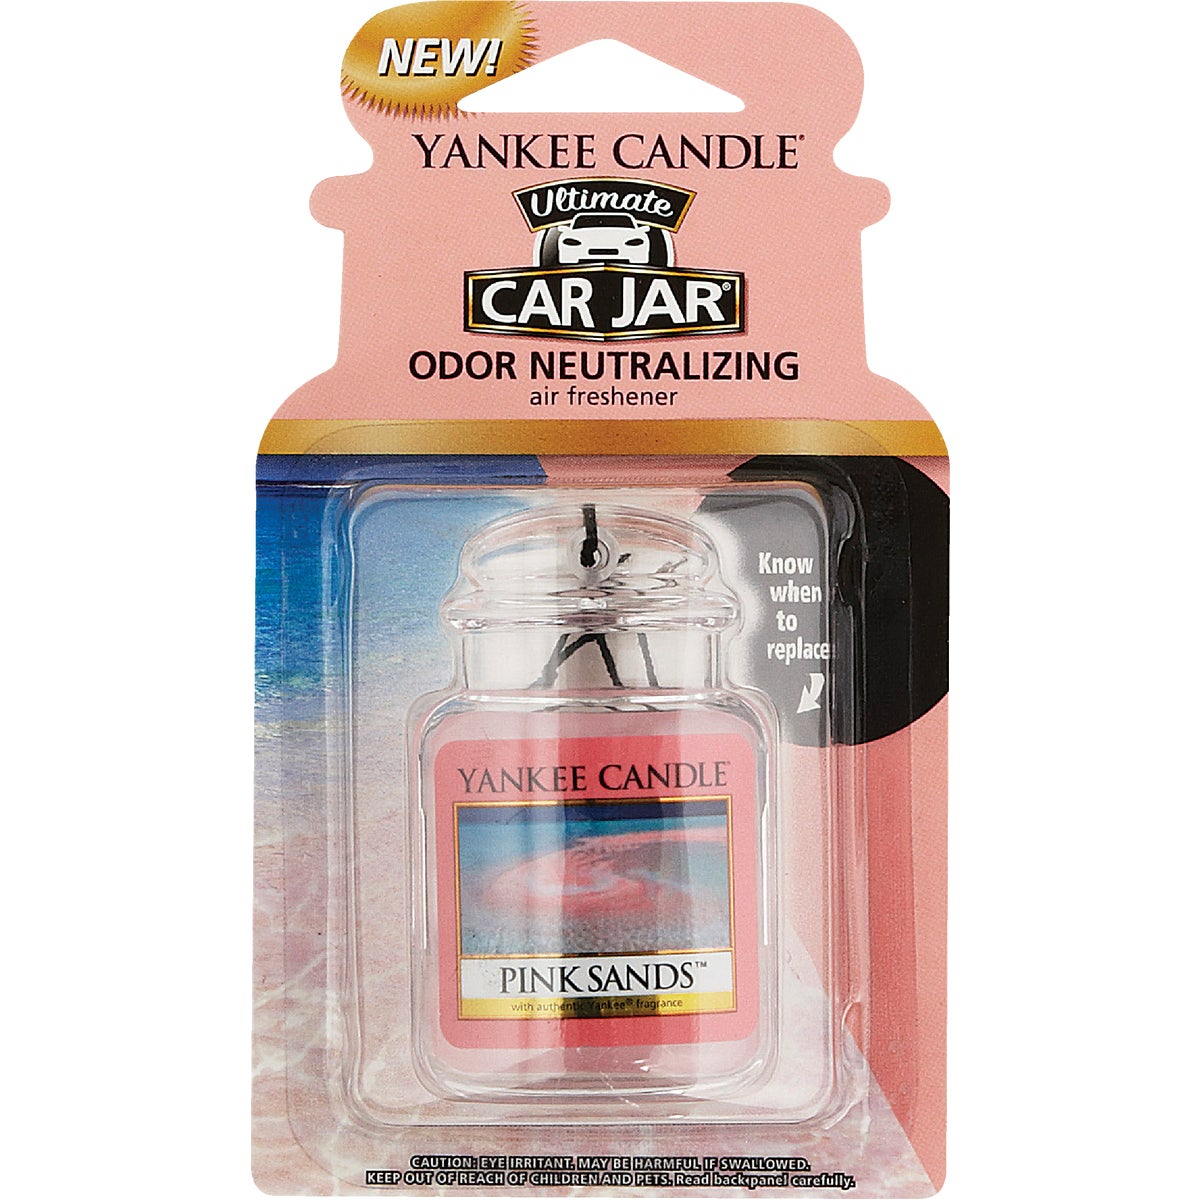 PINK SANDS ULTMT CAR JAR - 1238122 by Yankee Candle Co